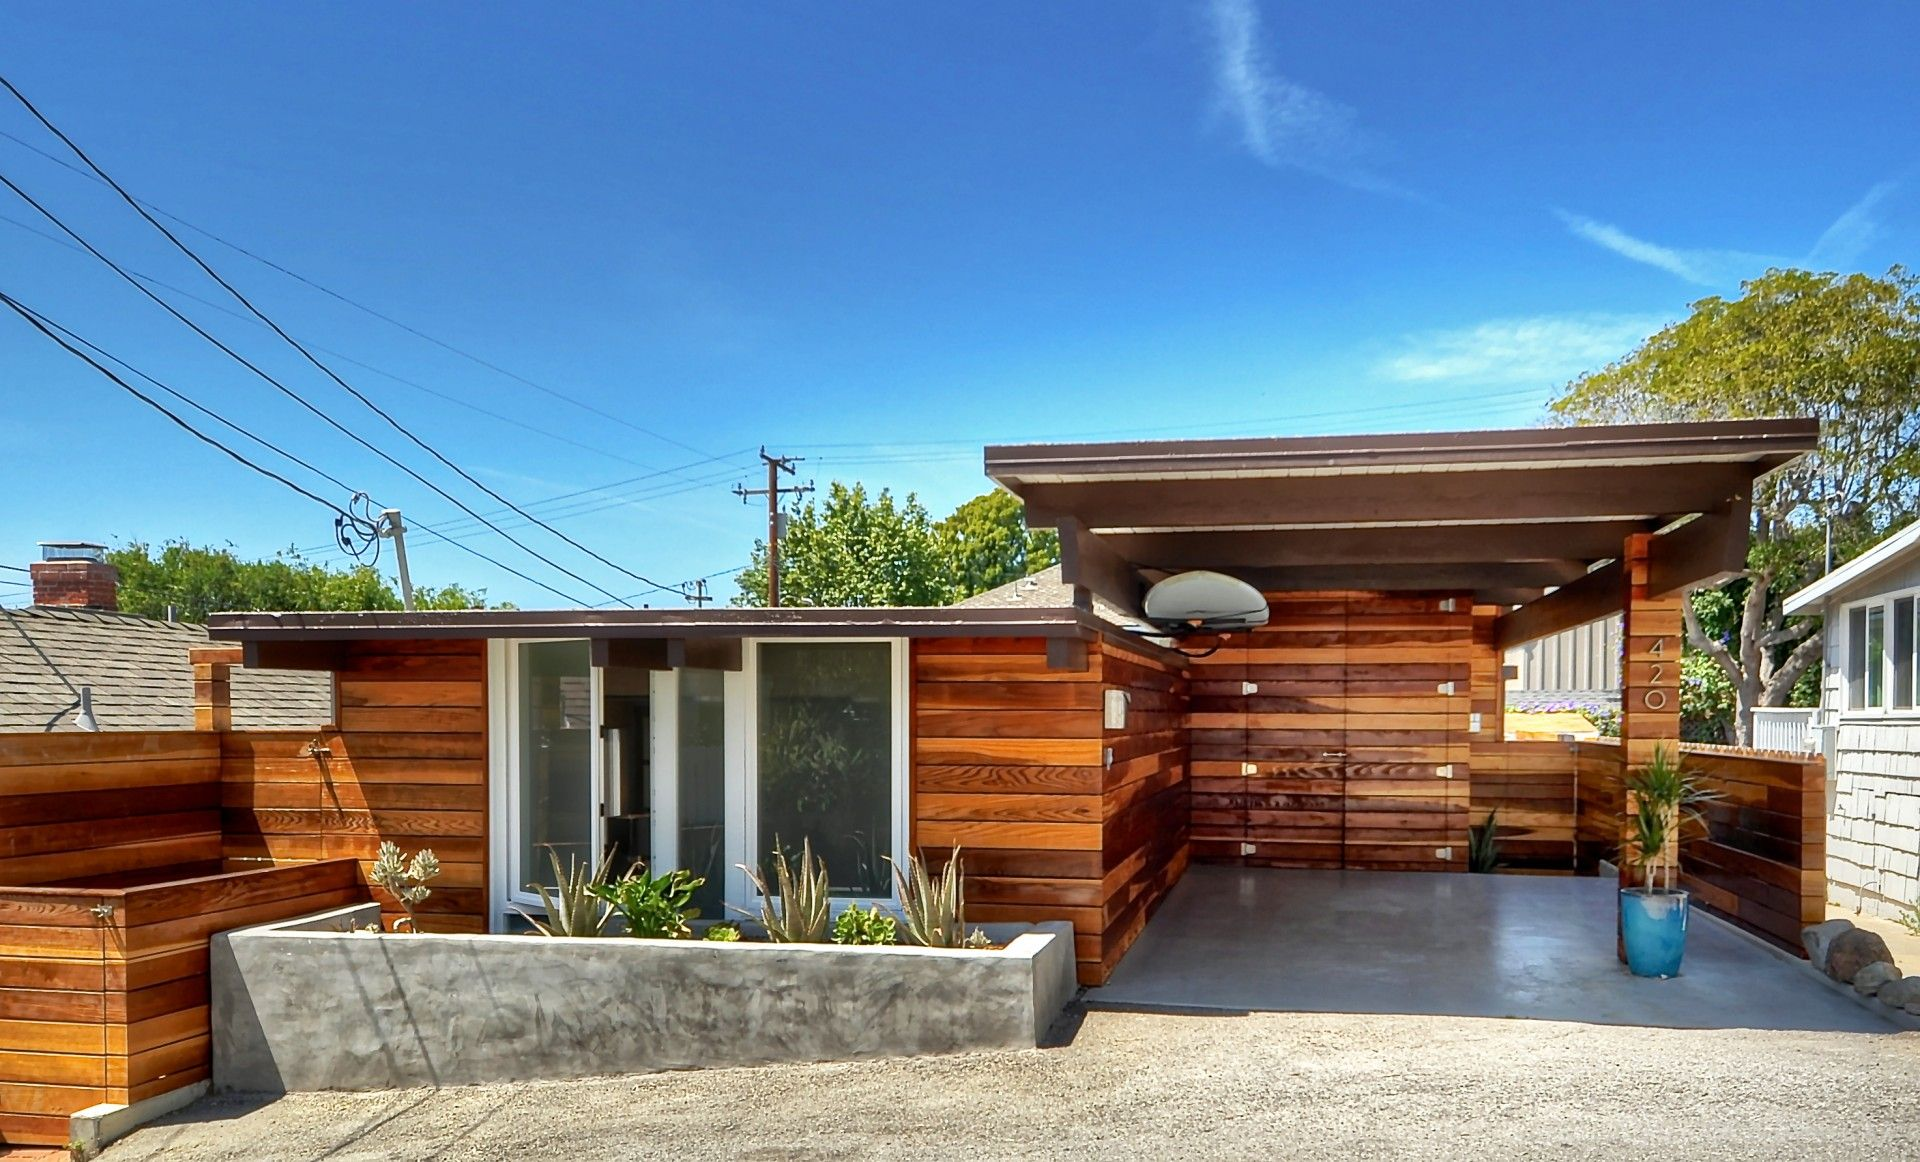 Modern Architecture Beach House exterior redwood siding, midcentury modern architecture, concrete